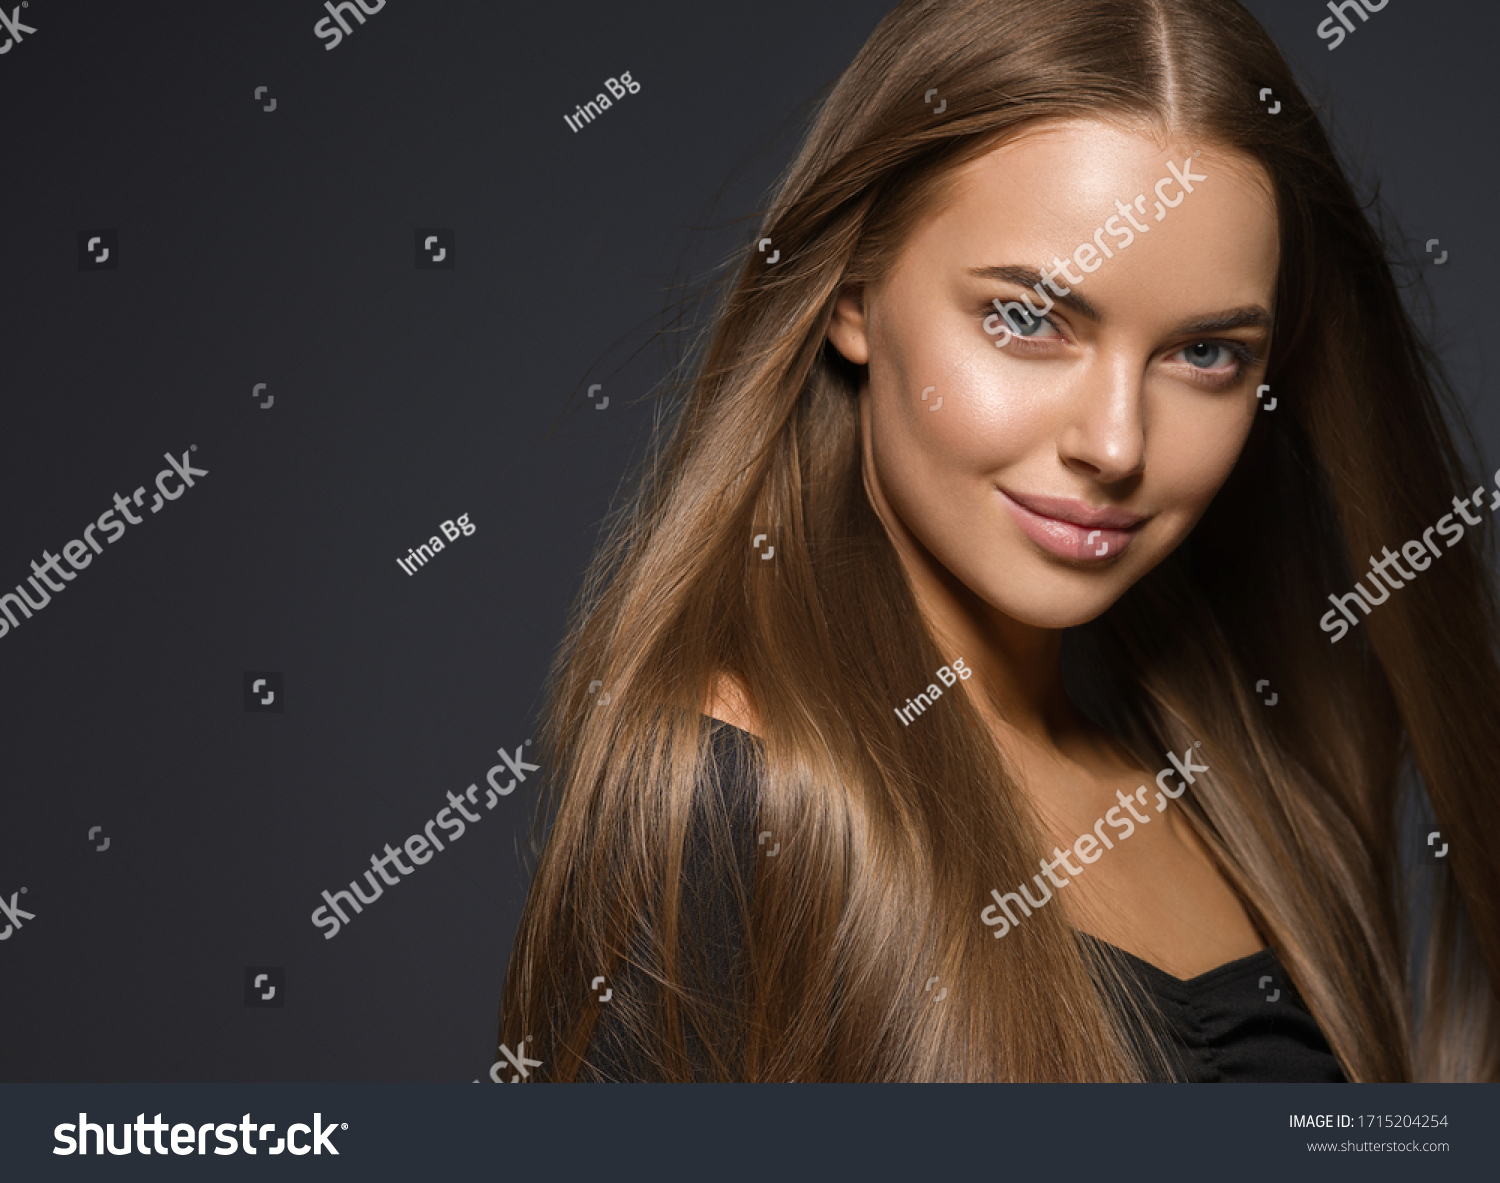 Smooth hair beauty woman smile face natural make up female healthy skin and hair glamour beauty over dark background #1715204254